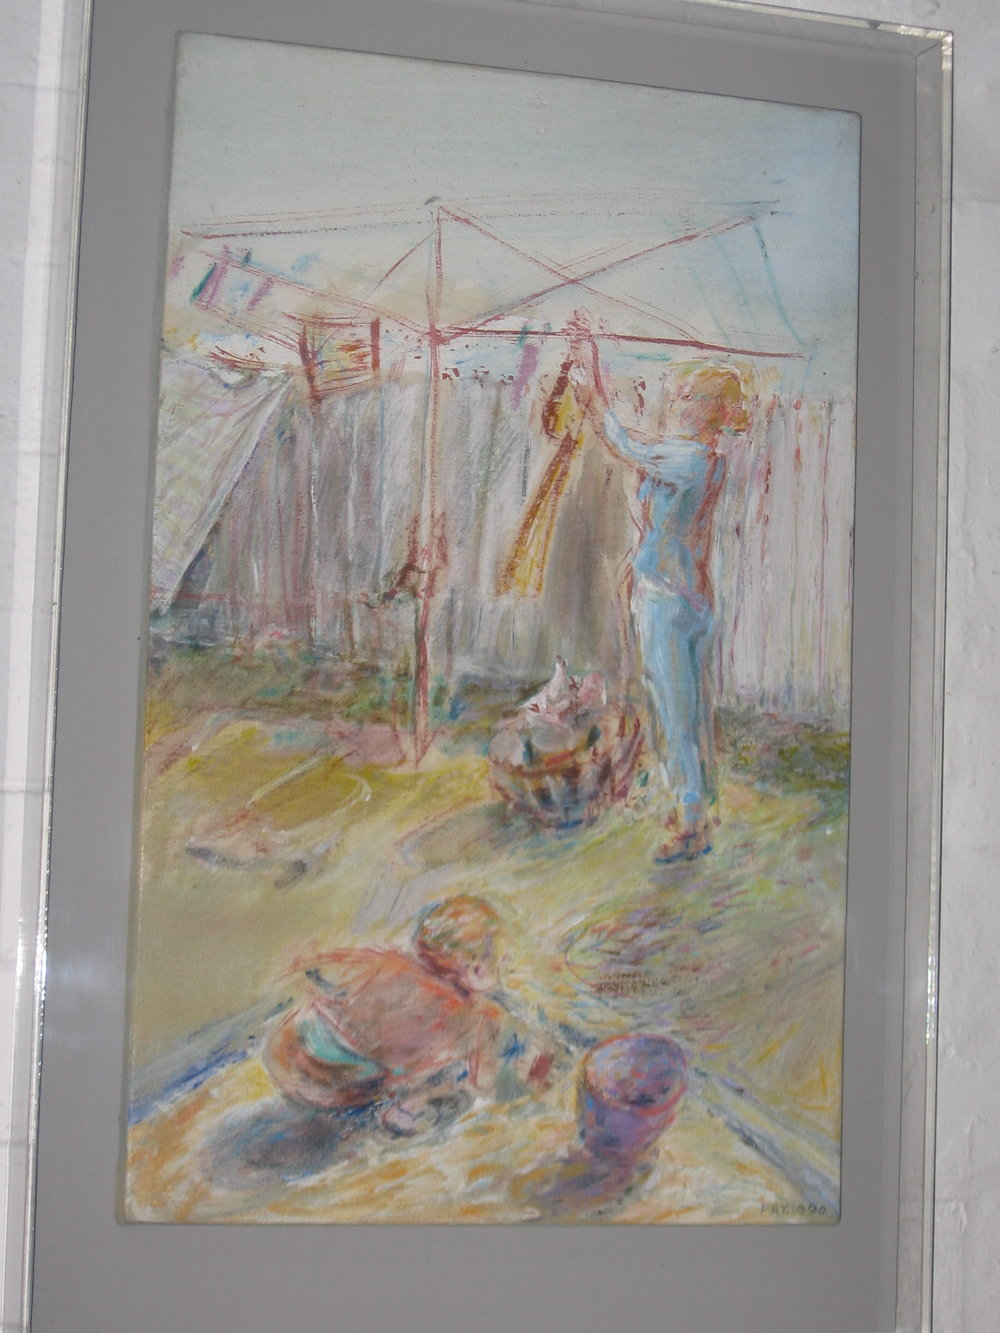 Hanging the washing, 1990, acrylic on cotton duck, 56 x 36 cm